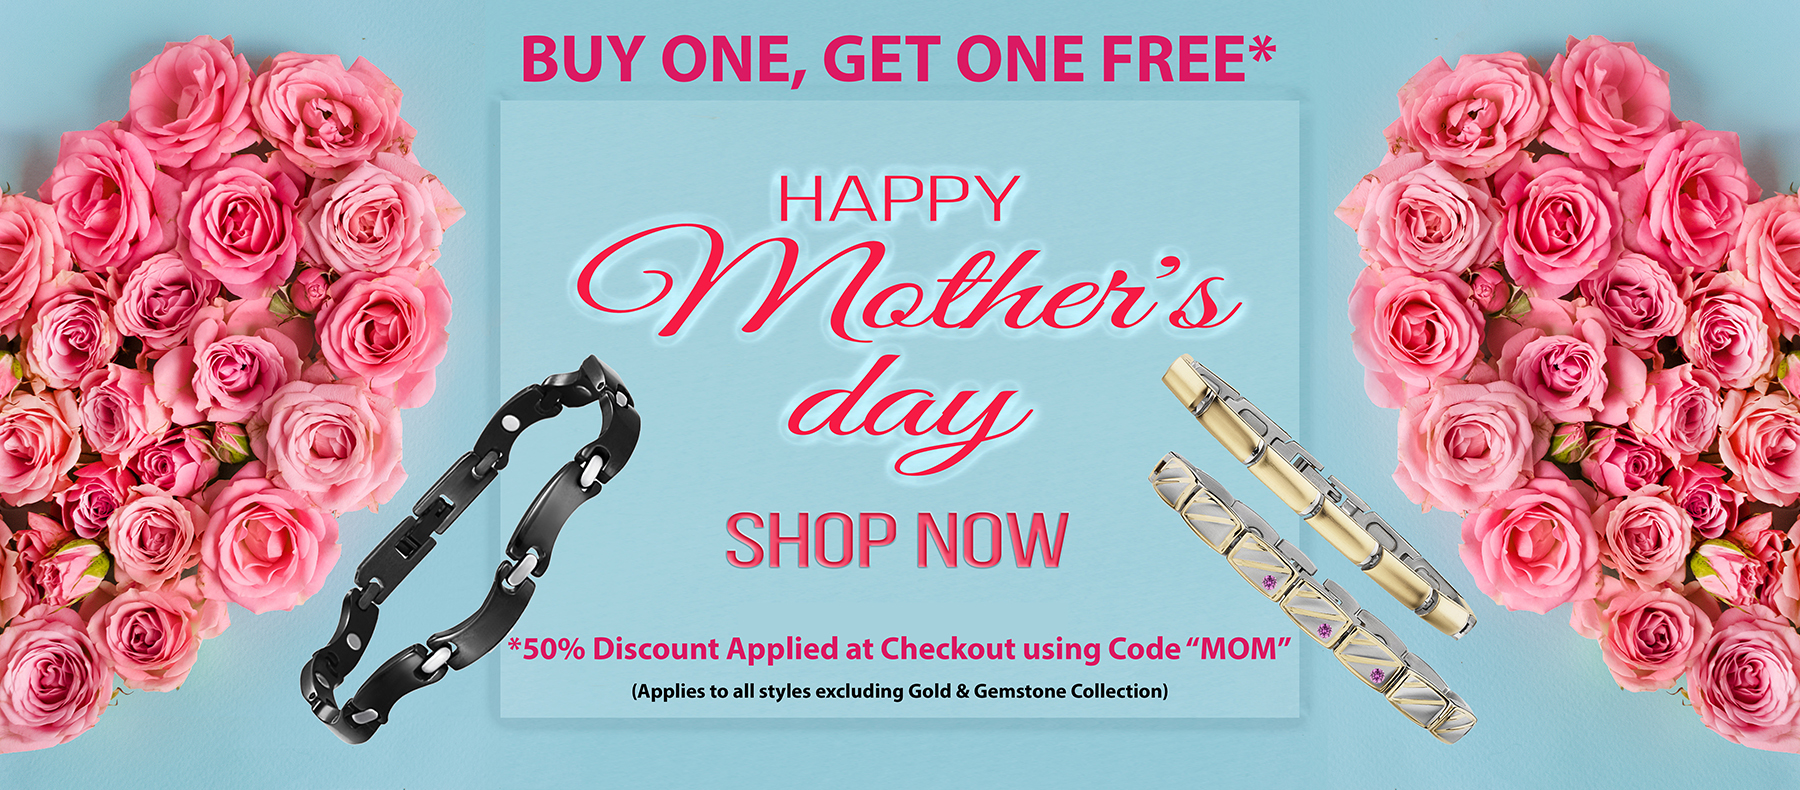 mothers-day-2021-small.jpg